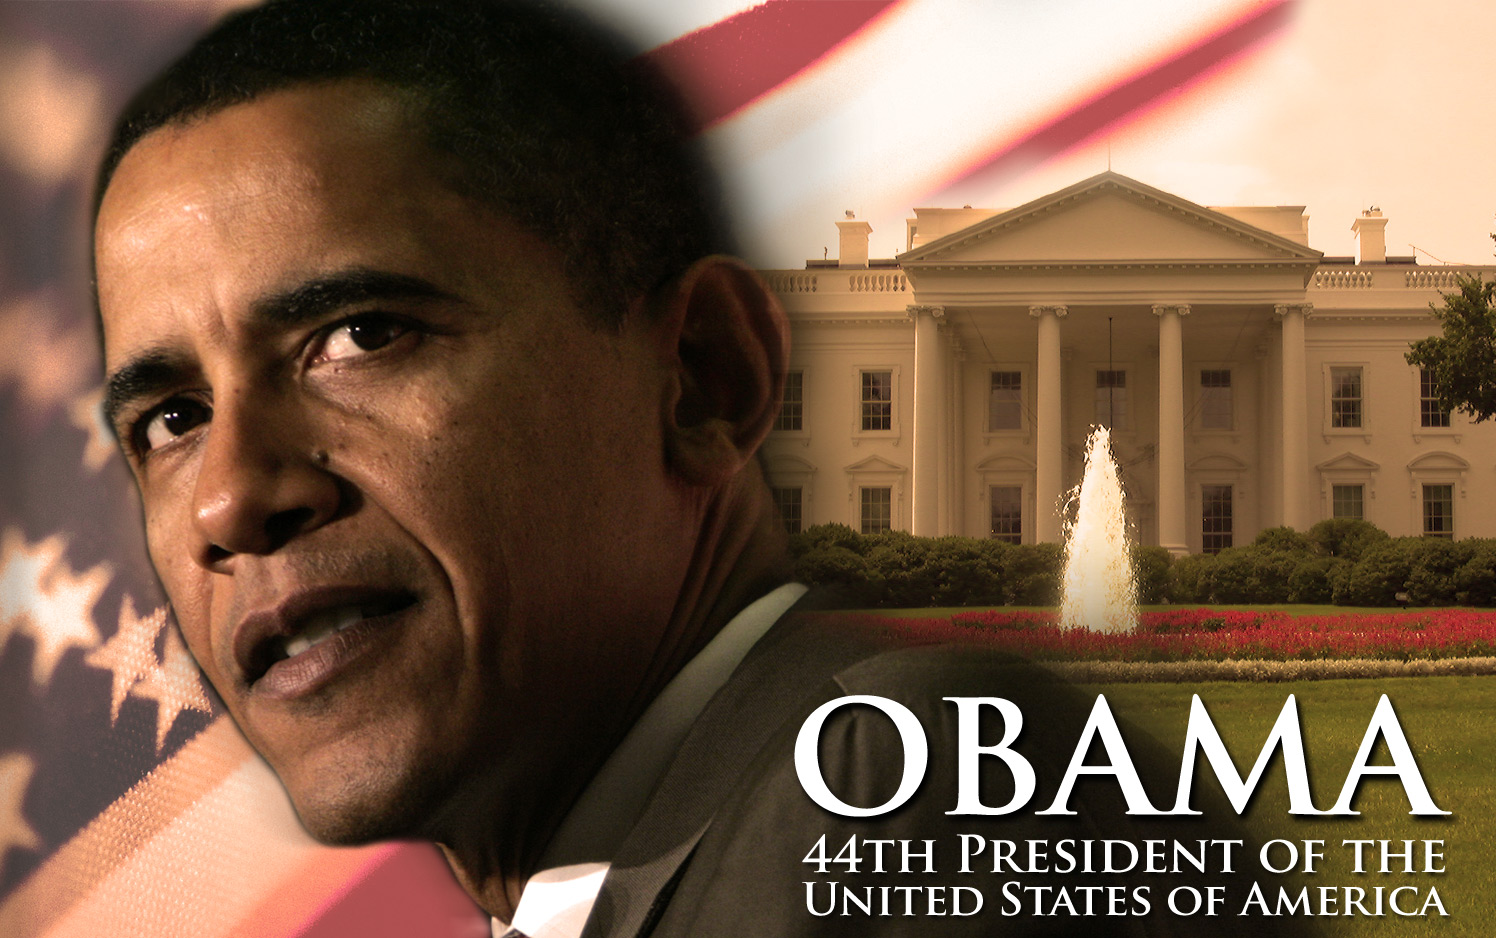 barack obama and the american presidency Barack obama was the 44th president of the united states of america first elected in 2008, obama became the first african-american president in us history his presidency ended jan 20.